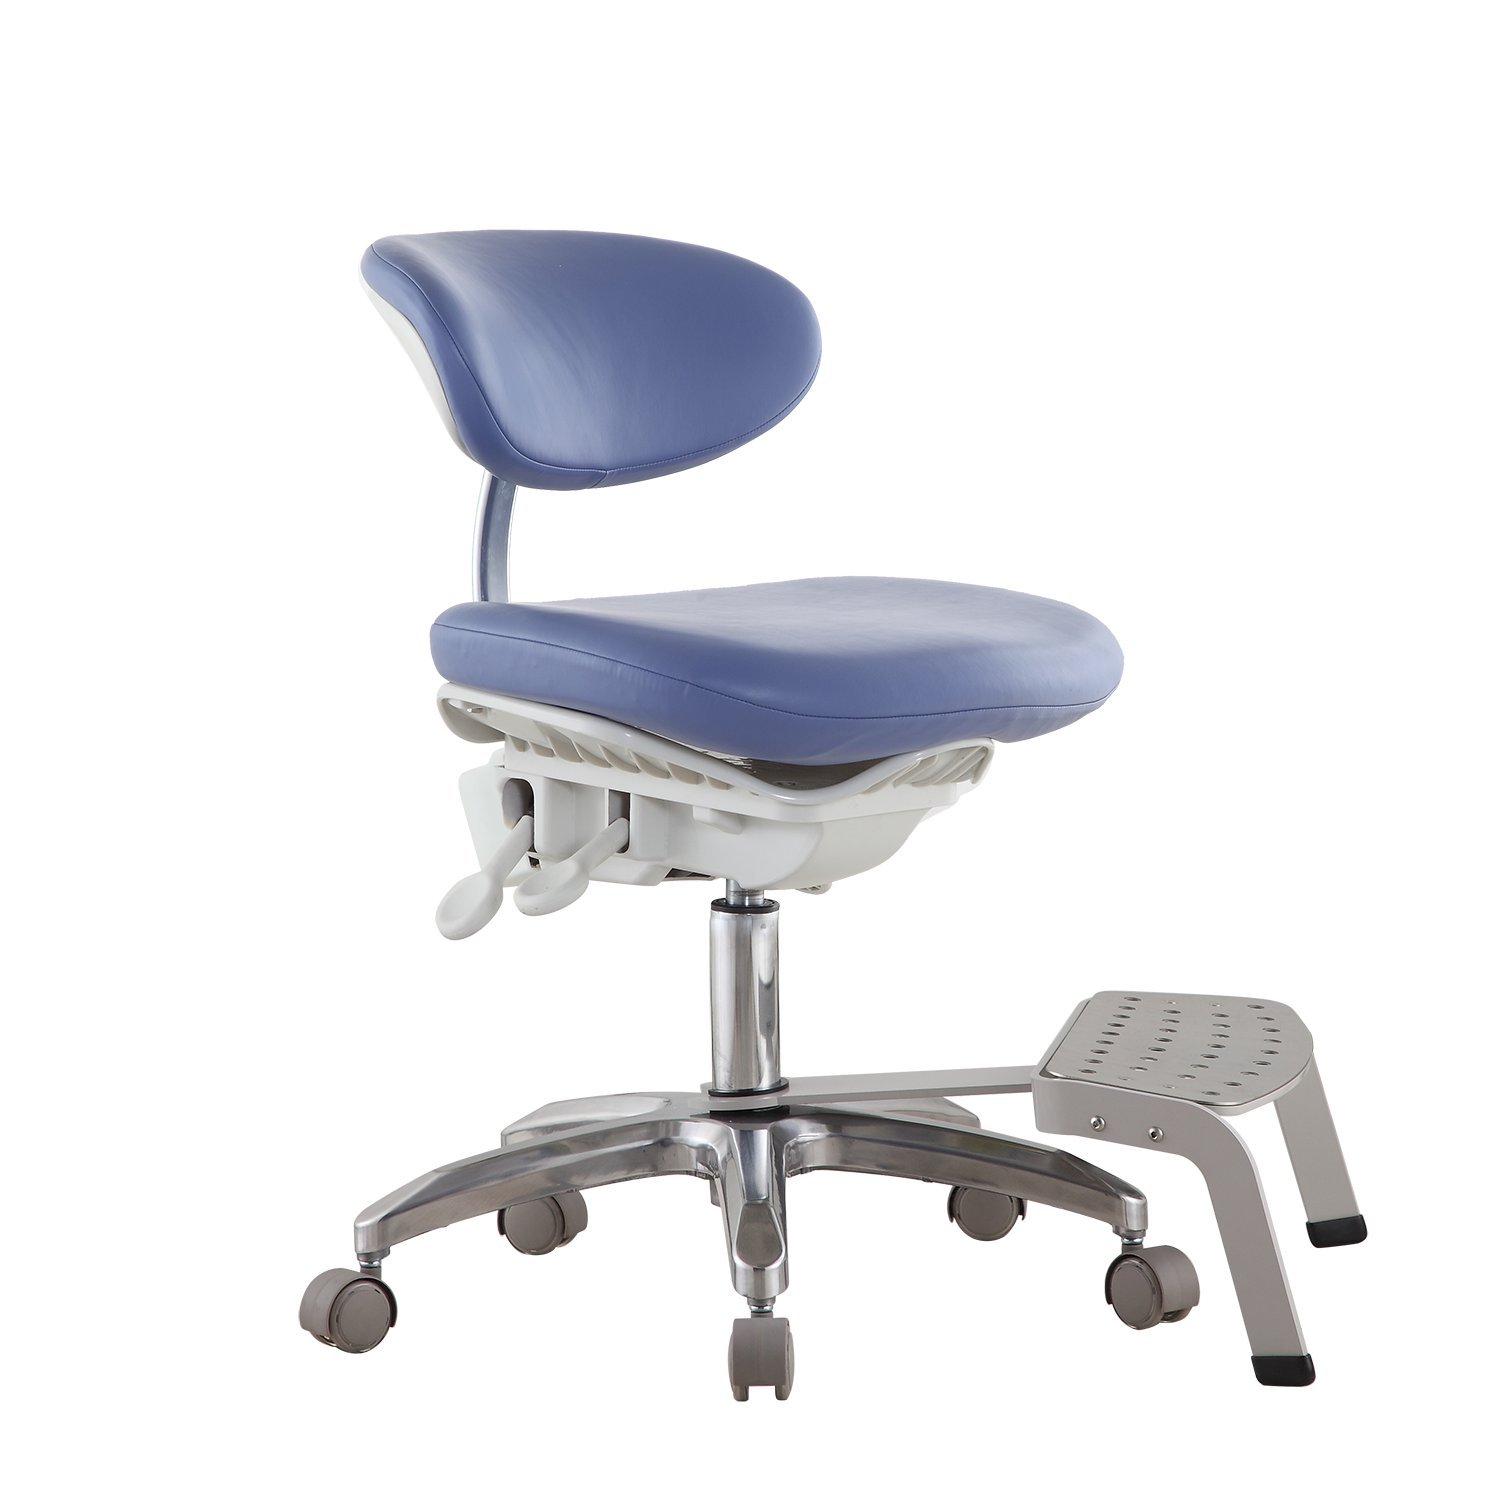 NSKI Dental Dynamic Chair DS-PB1 Dentist Stool PU Leather with Pedal Base Height Adjustable